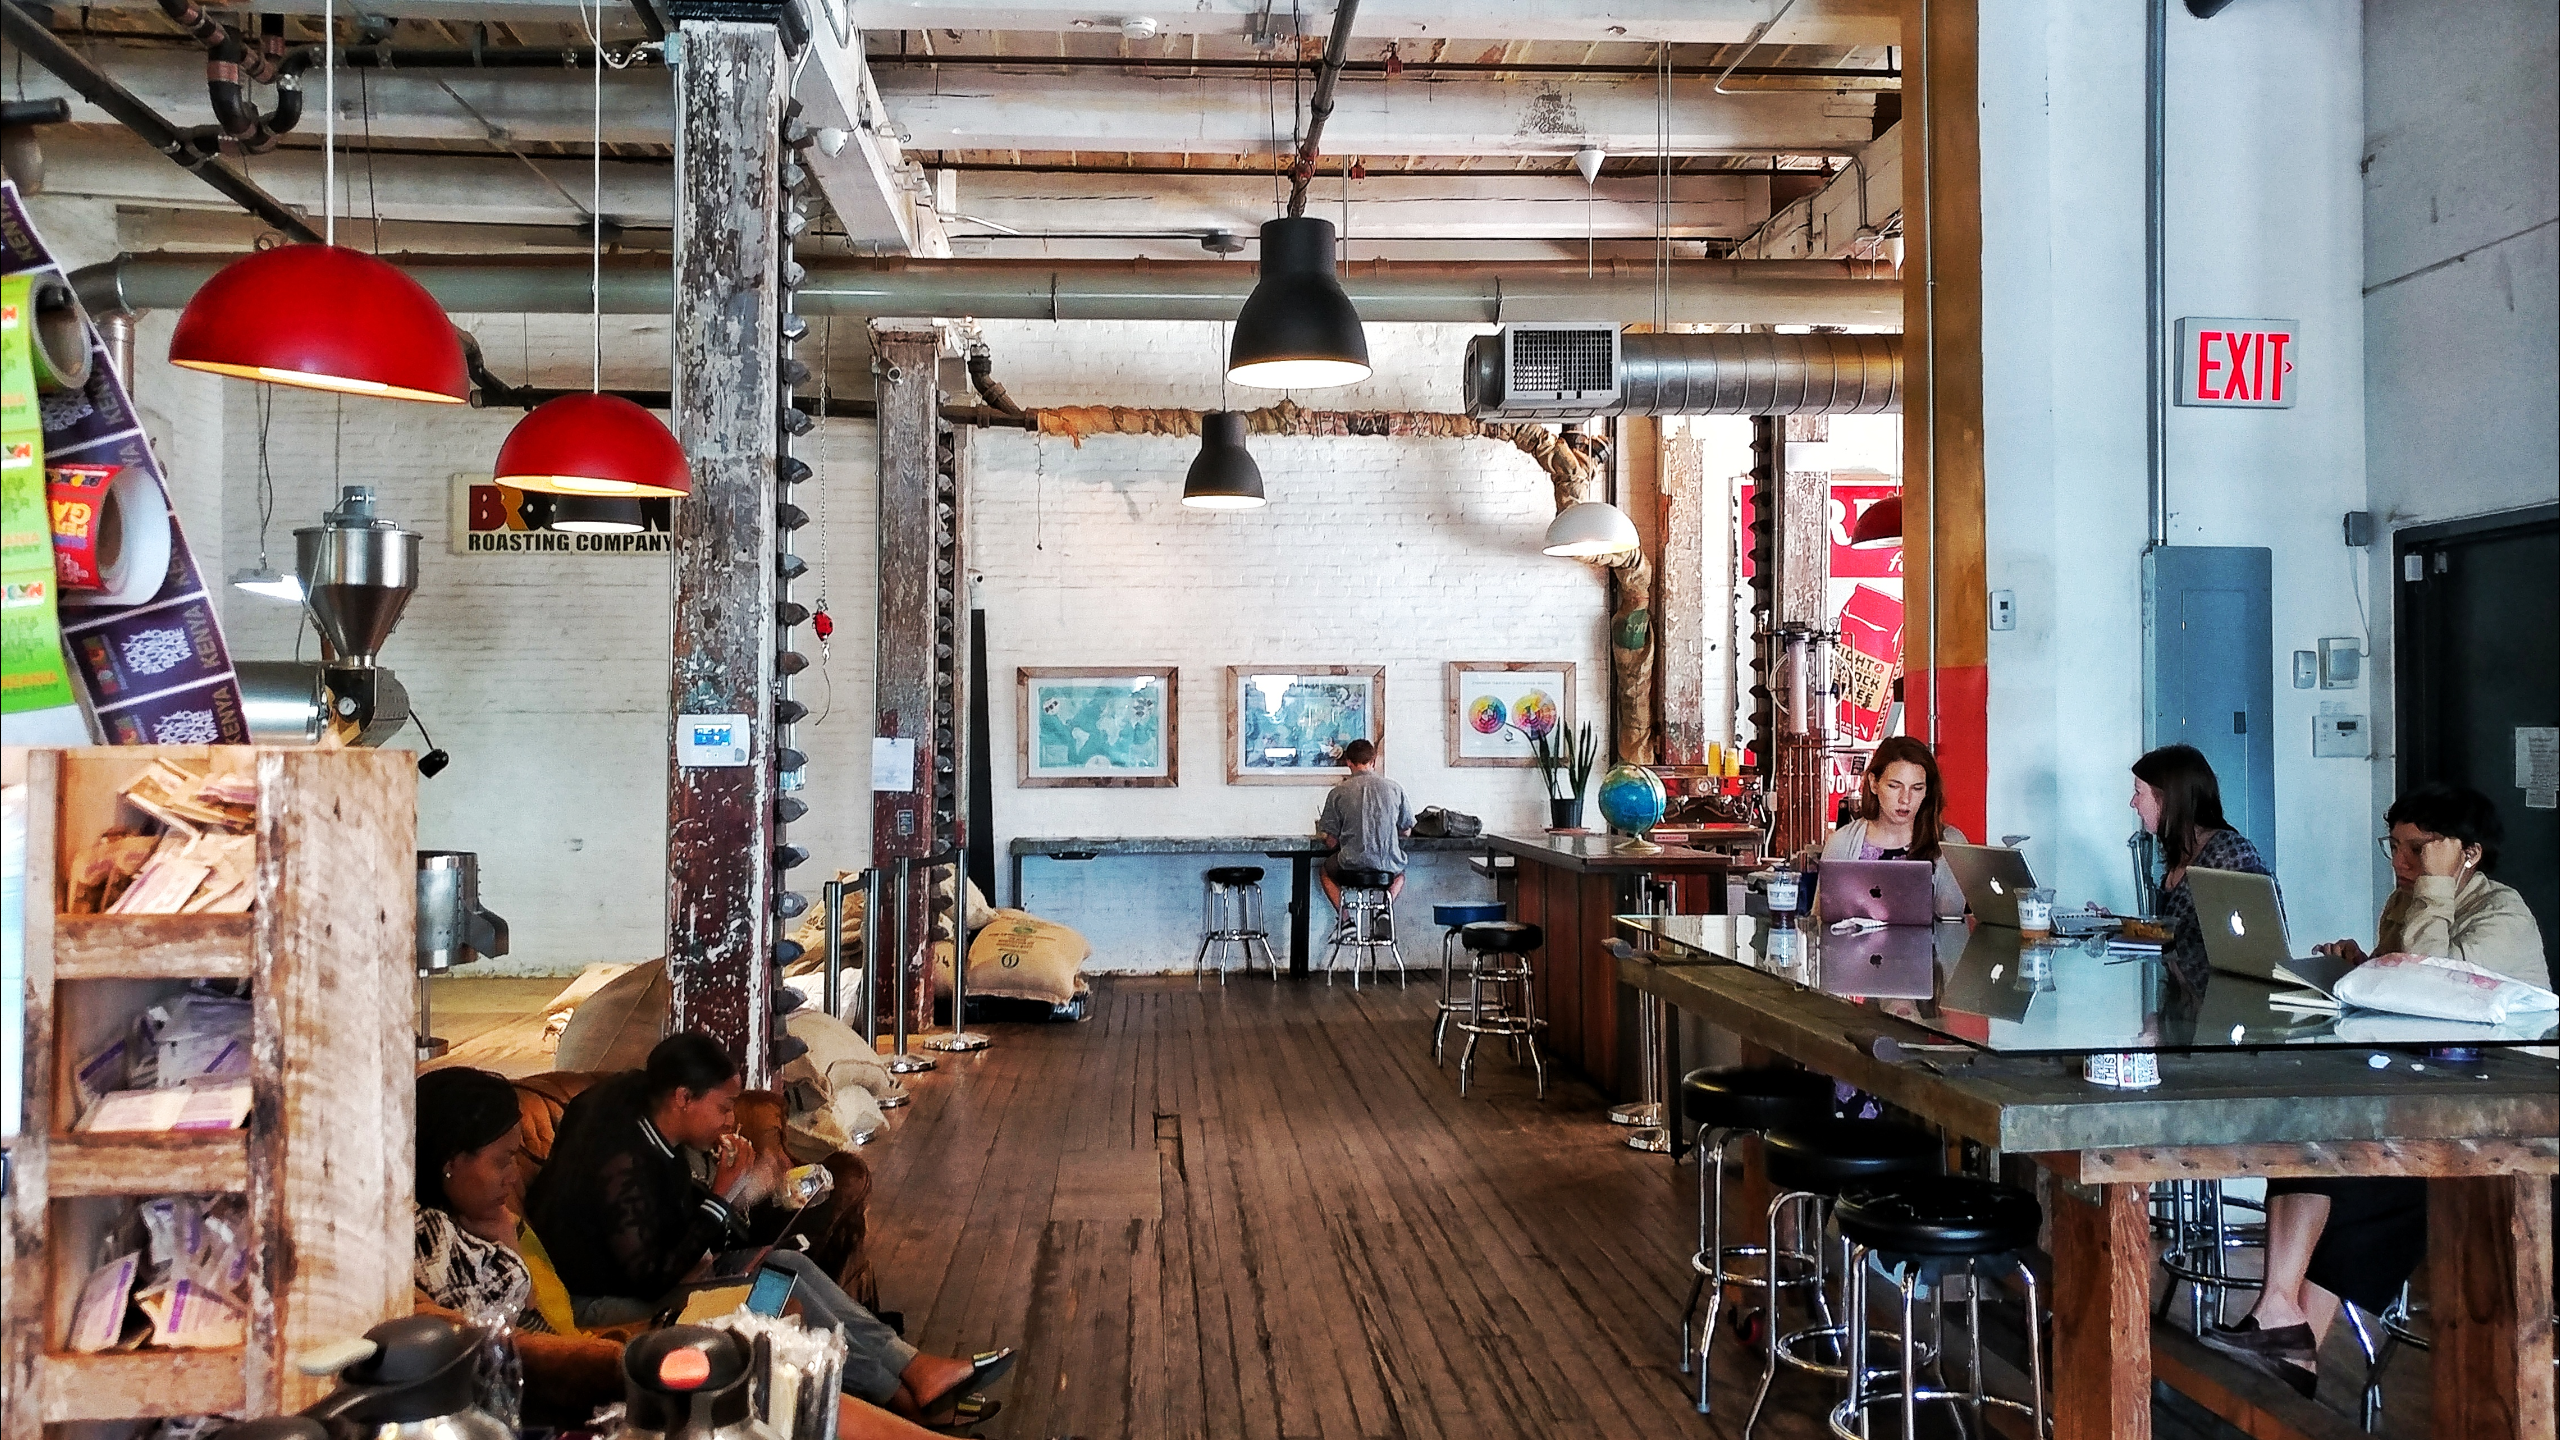 The Best Coffee Shops For Meetings - New York - The Infatuation